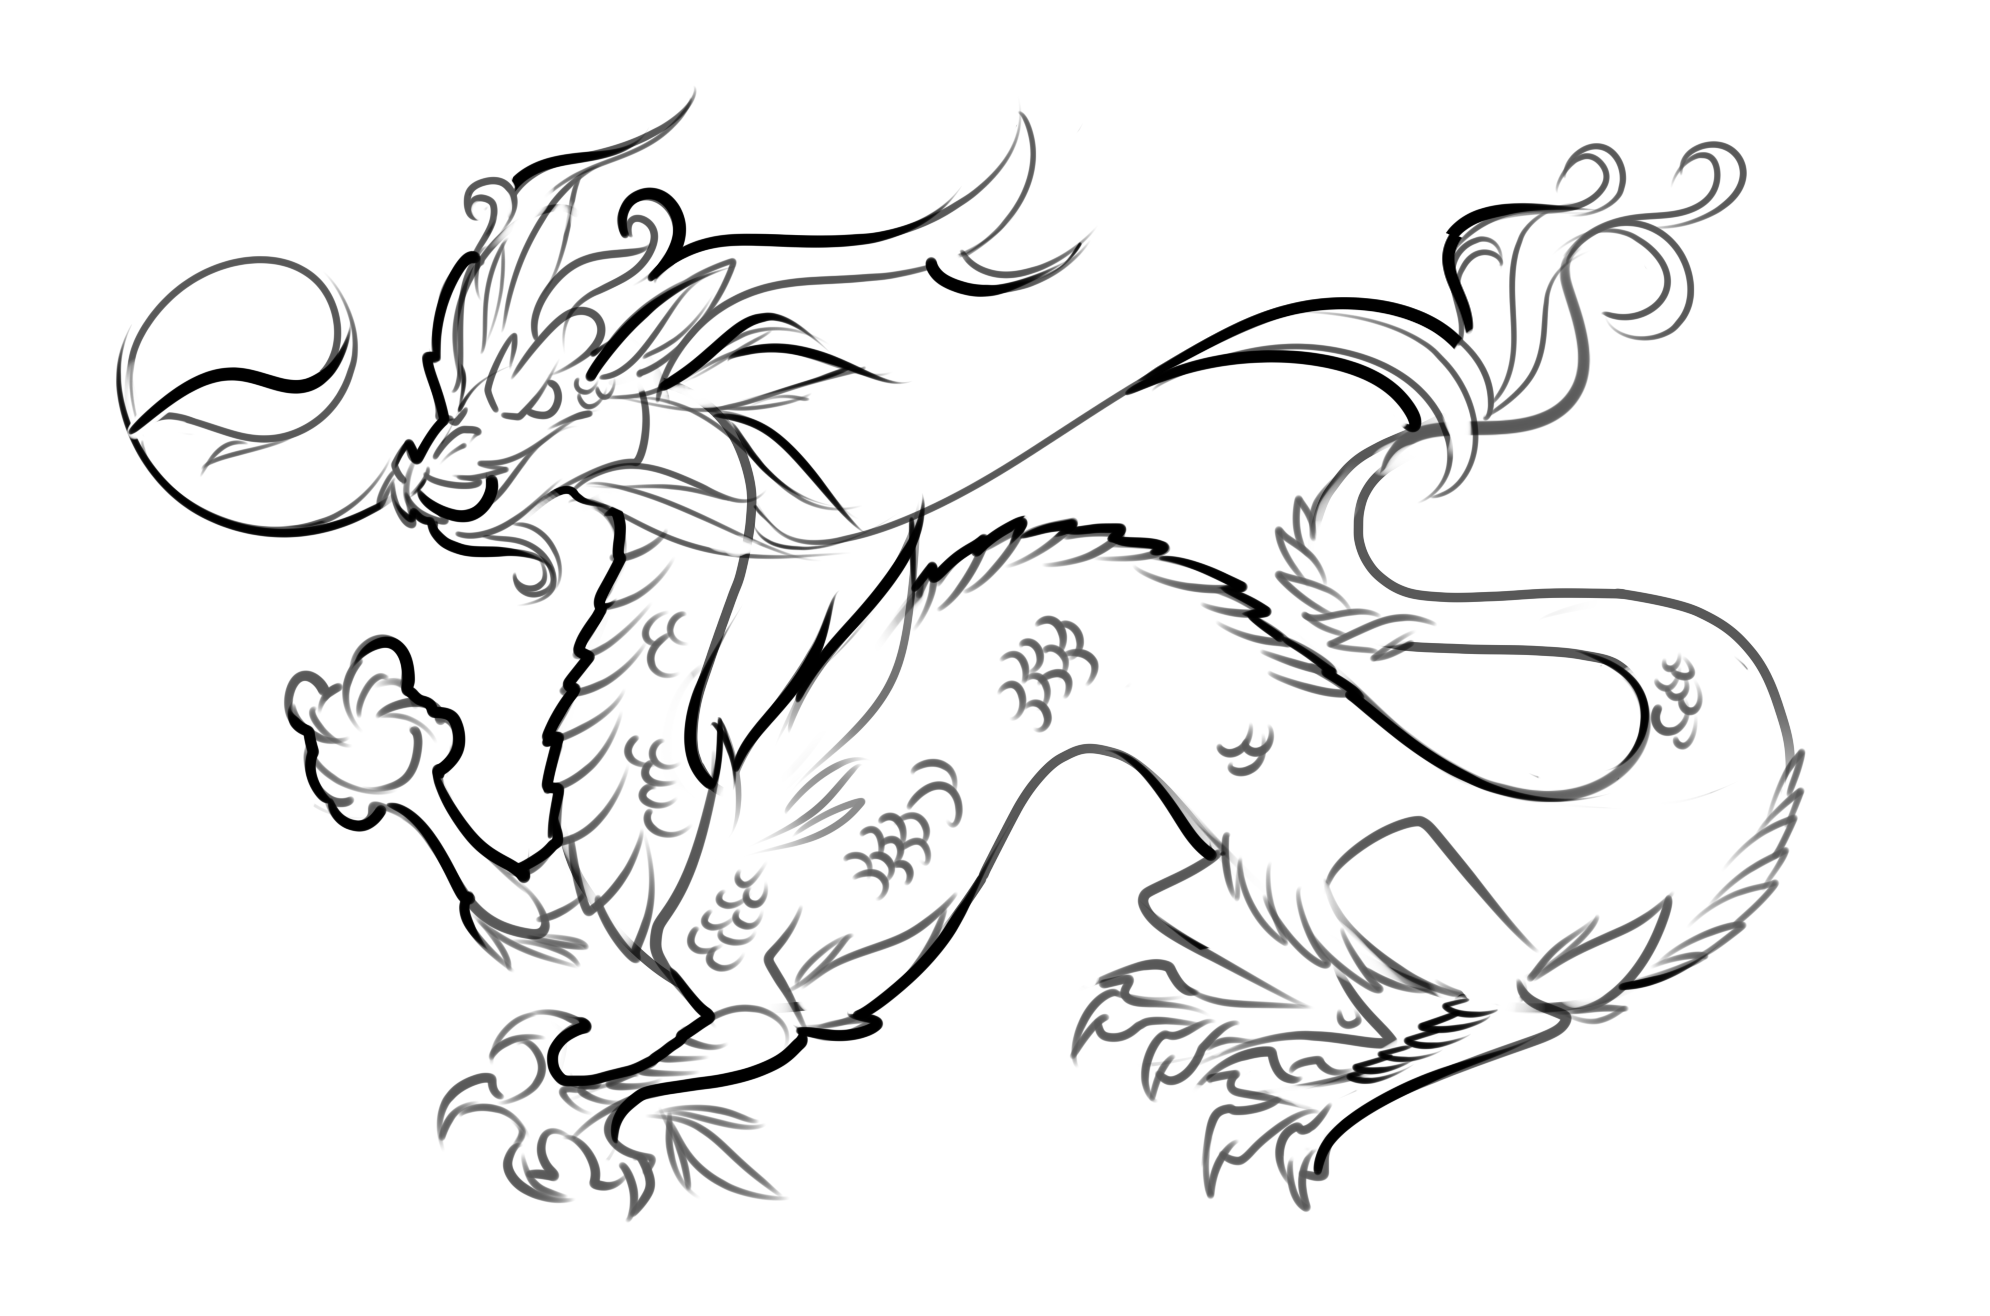 1990x1316 Japanese Dragon Coloring Pages With Chinese Dragons Coloring